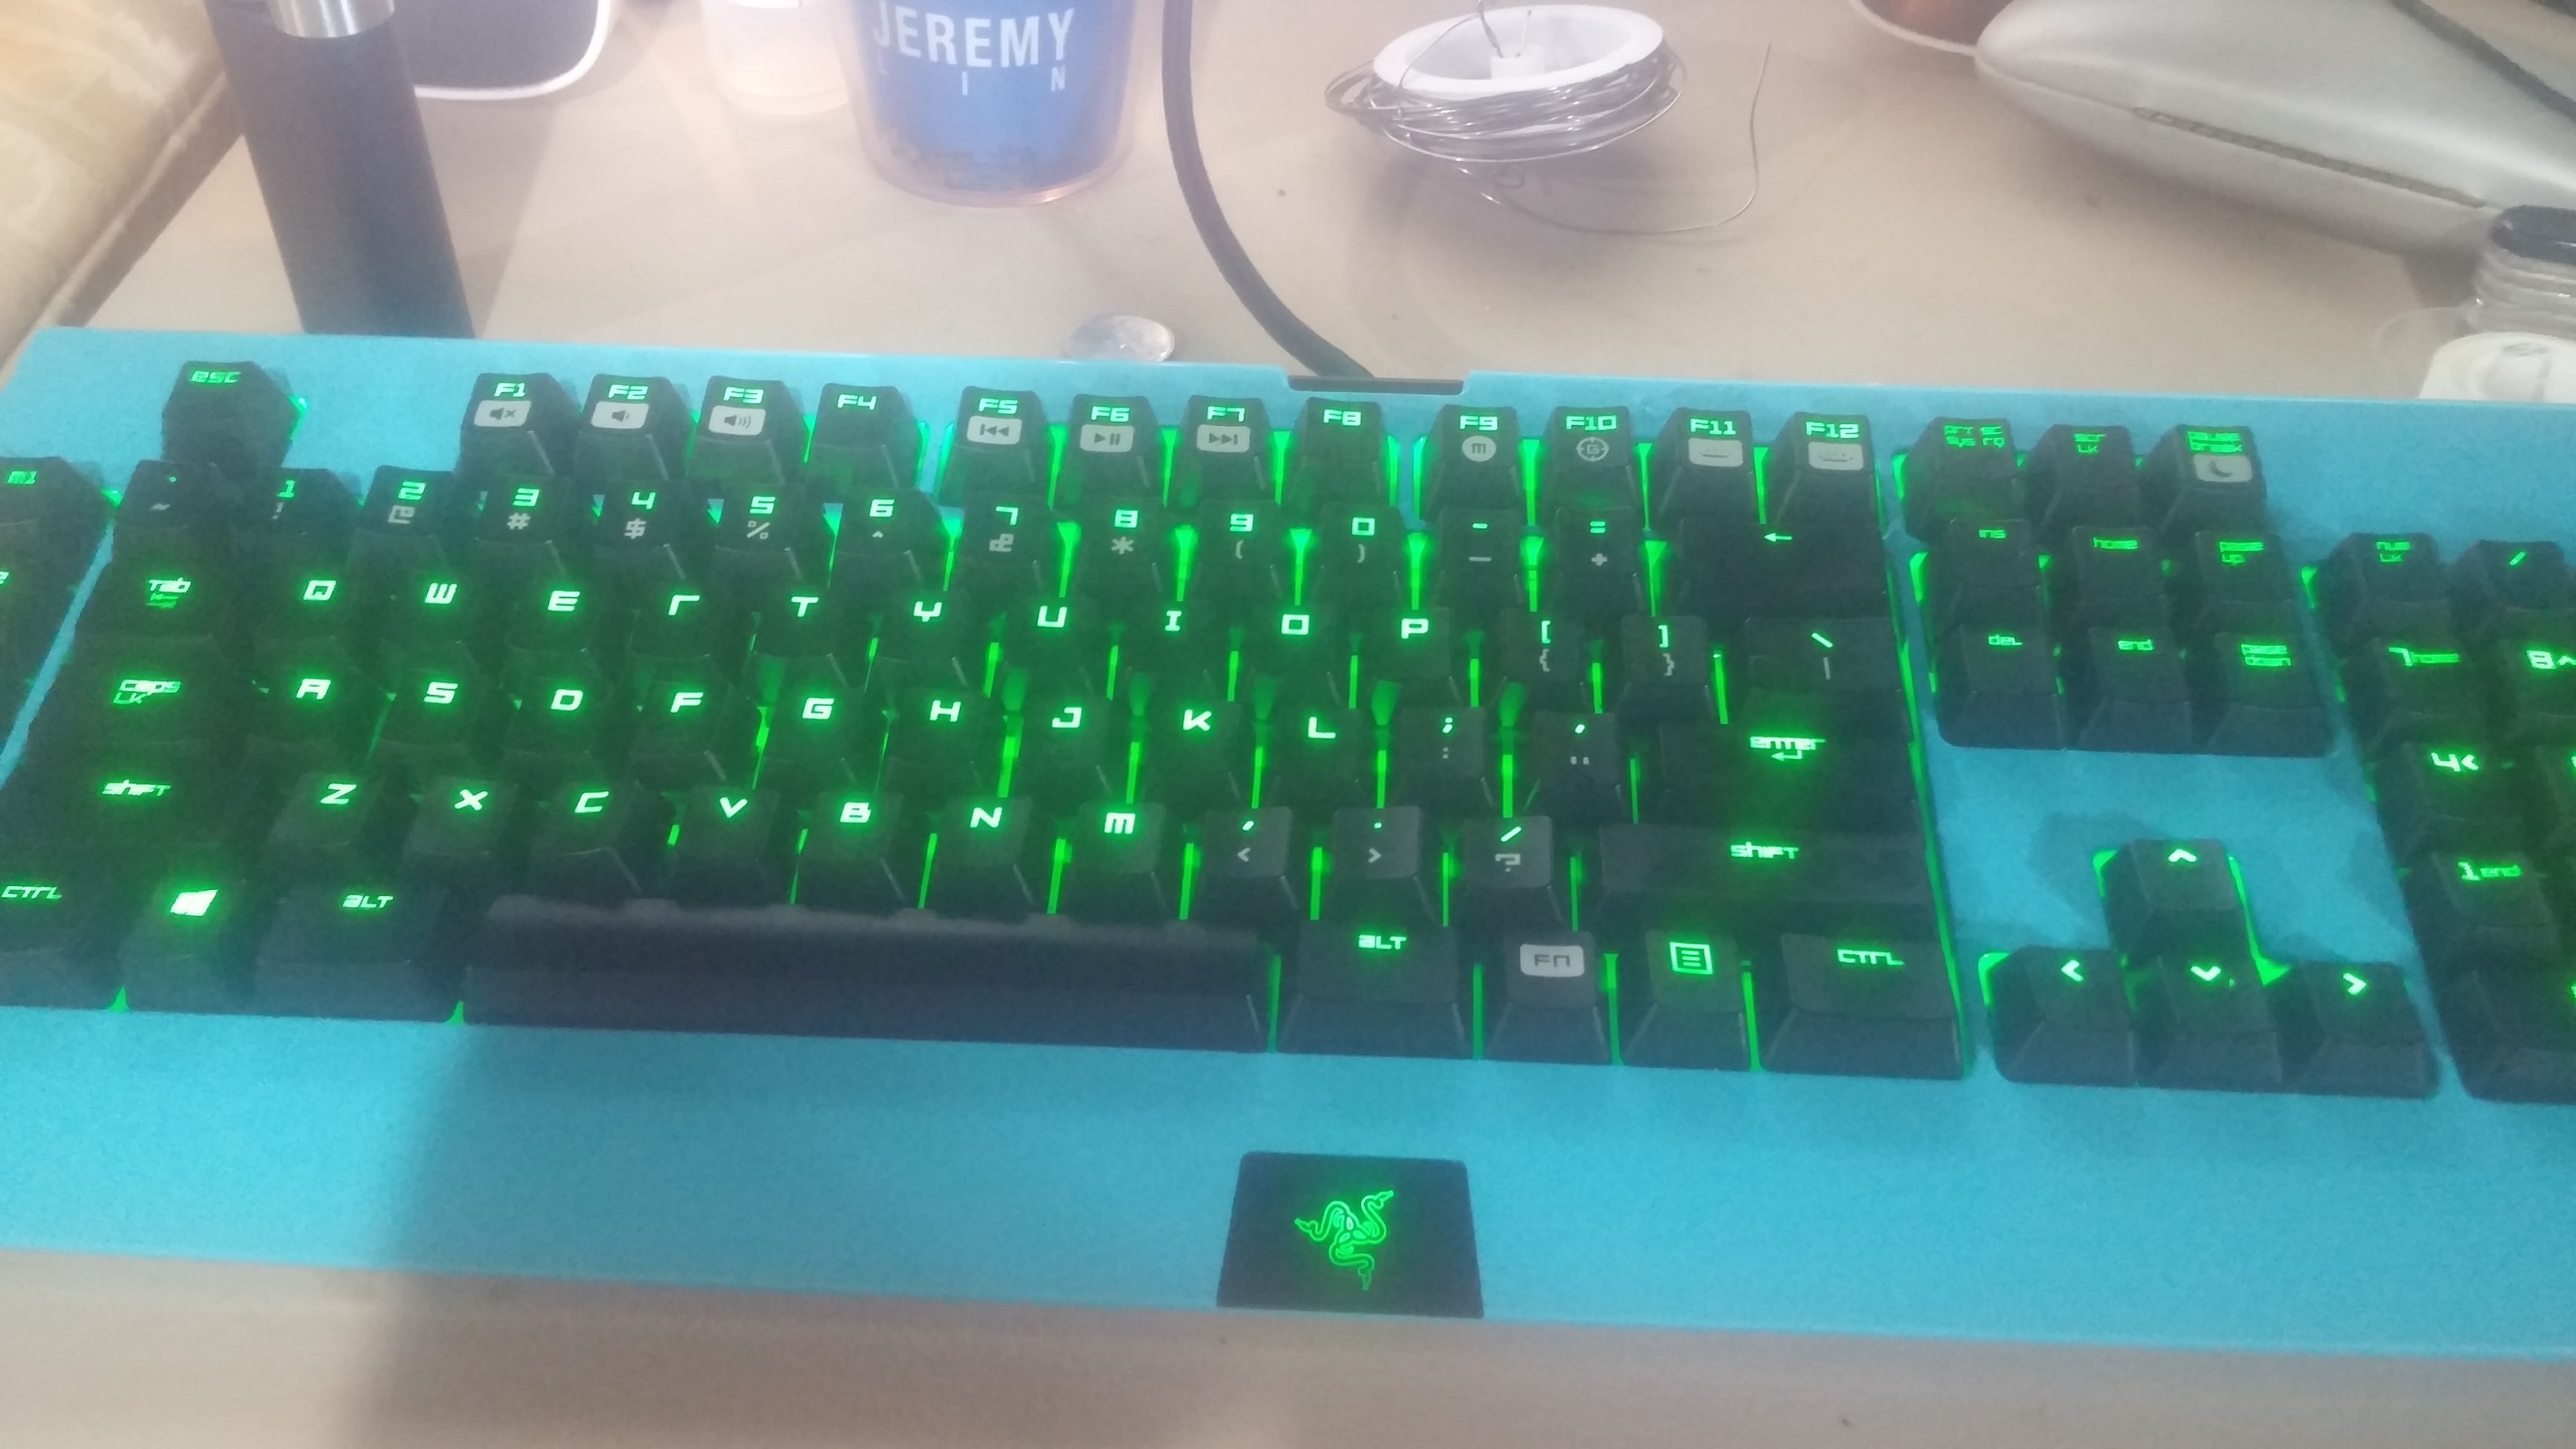 Mechanical Keyboard Club! - Page 217 - Peripherals - Linus Tech Tips